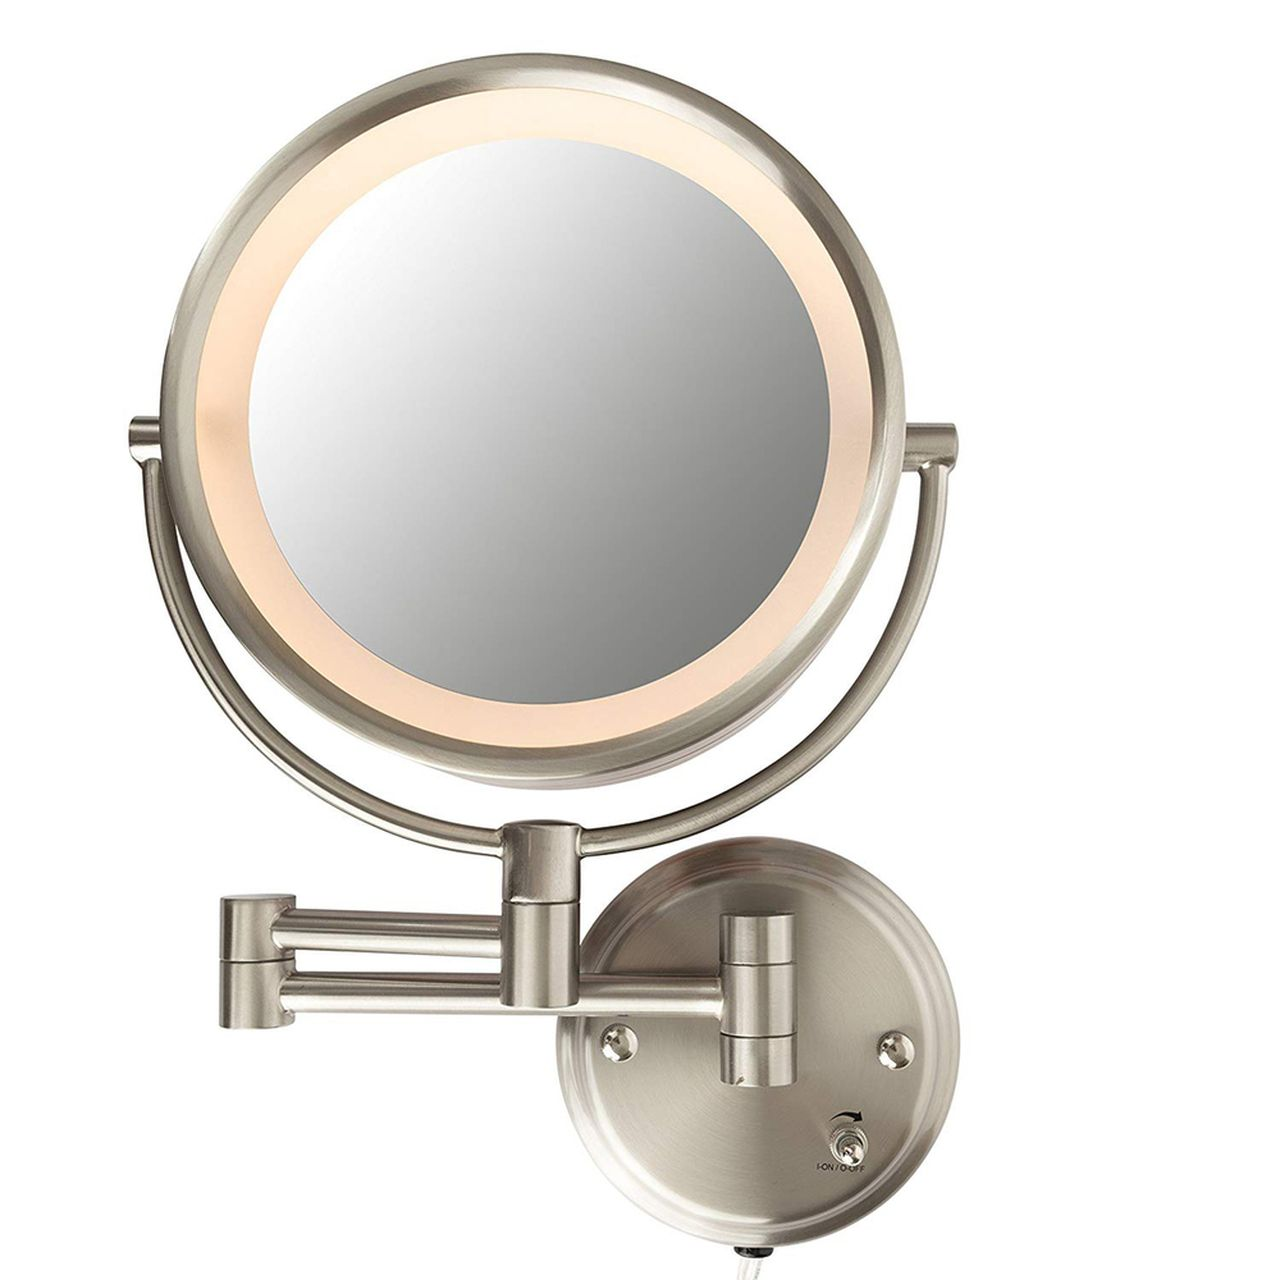 Conair Lighted 7x Brushed Nickel Wall Mount Fluorescent Hotel Makeup Mirror Taylor S Online Marketplace In 2020 Mirror Wall Mounted Mirror Makeup Mirror